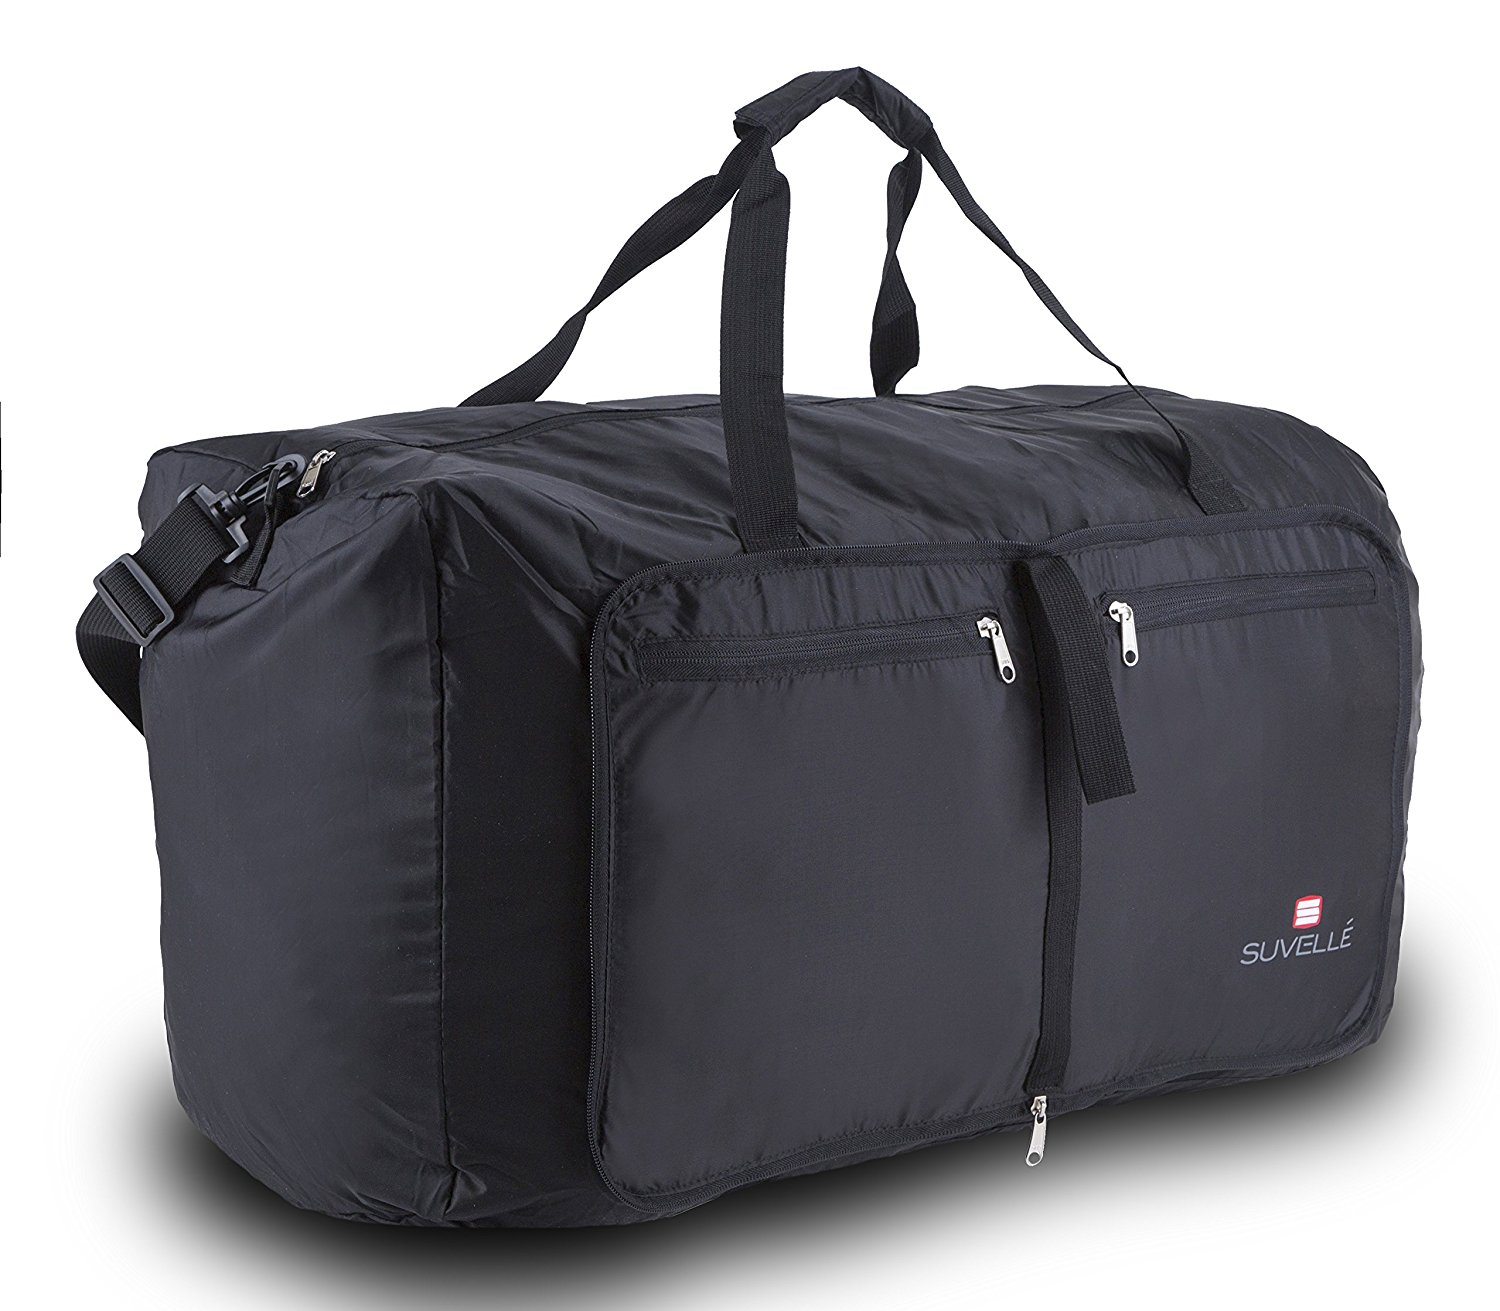 """Suvelle Lightweight 29"""" Travel Foldable Duffel Bag For Luggage Gym Sports Water Resistant Nylon Duffle"""